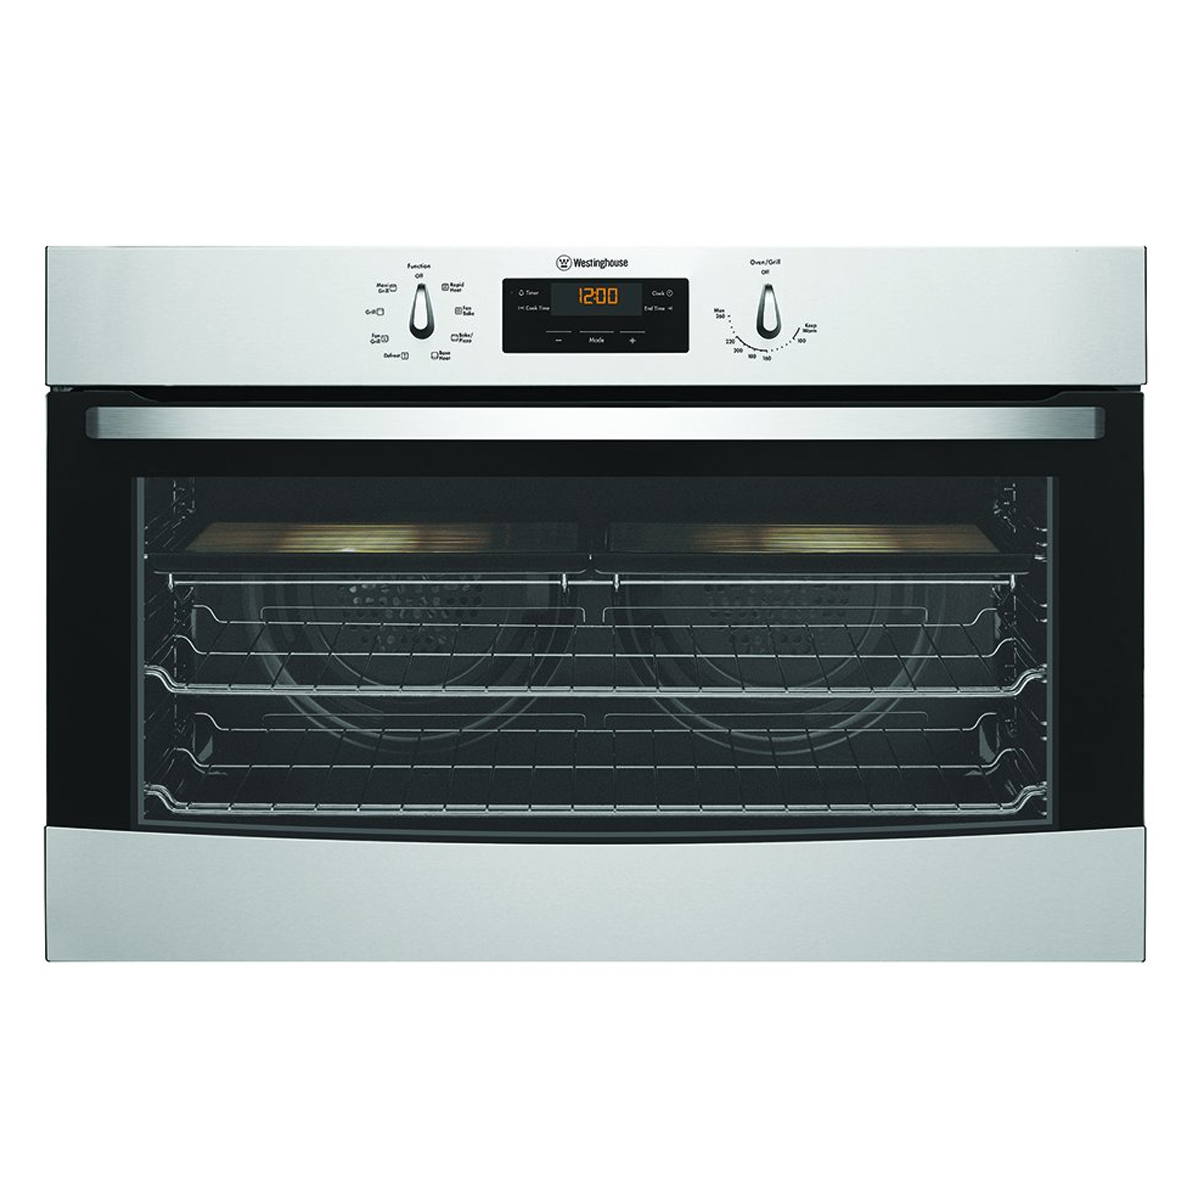 Westinghouse WVE914SB 90cm Electric Built-In Oven